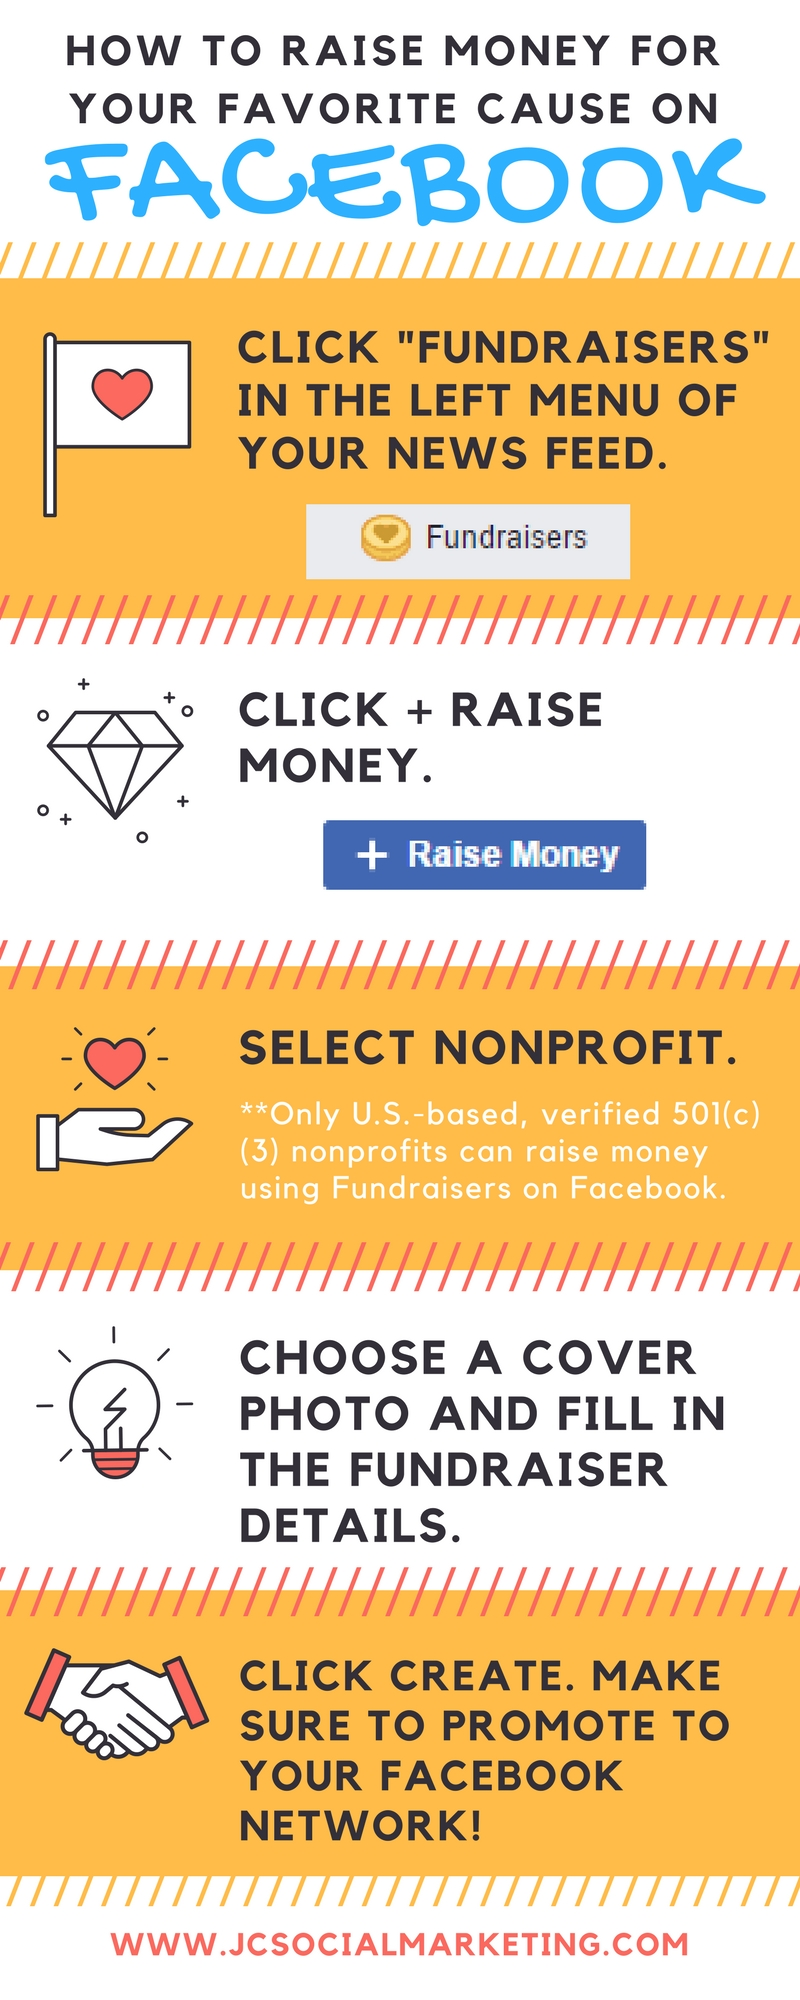 How to Raise Money For Your Favorite Cause On Facebook